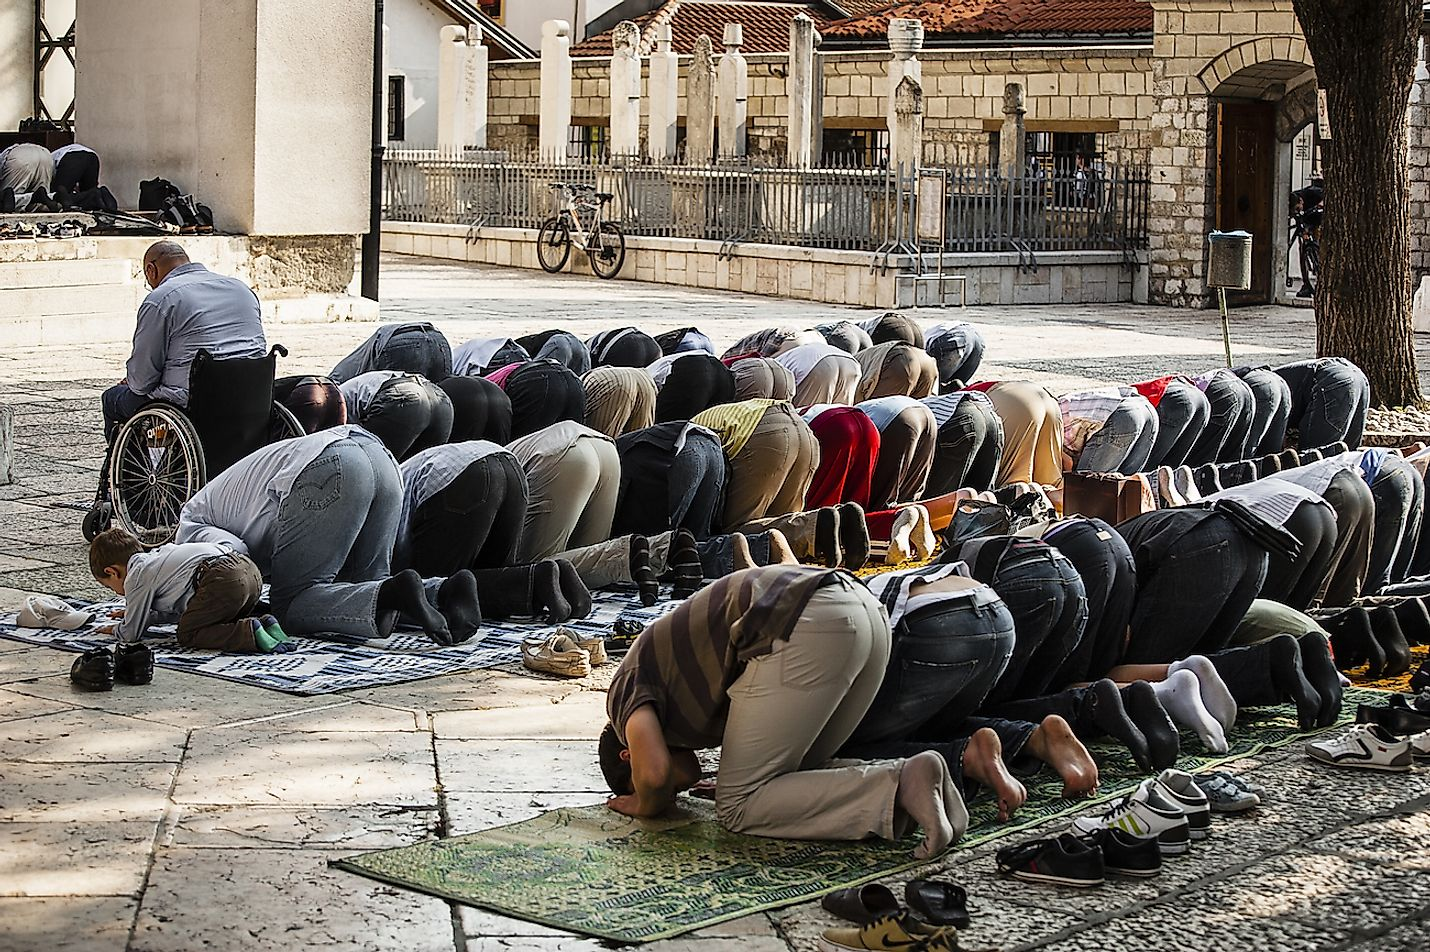 Friday Ramadan prayer/Sarajevo, Bosnia and Herzegovina, July 12, 2013. Image credit: Sorin Vidis/Shutterstock.com